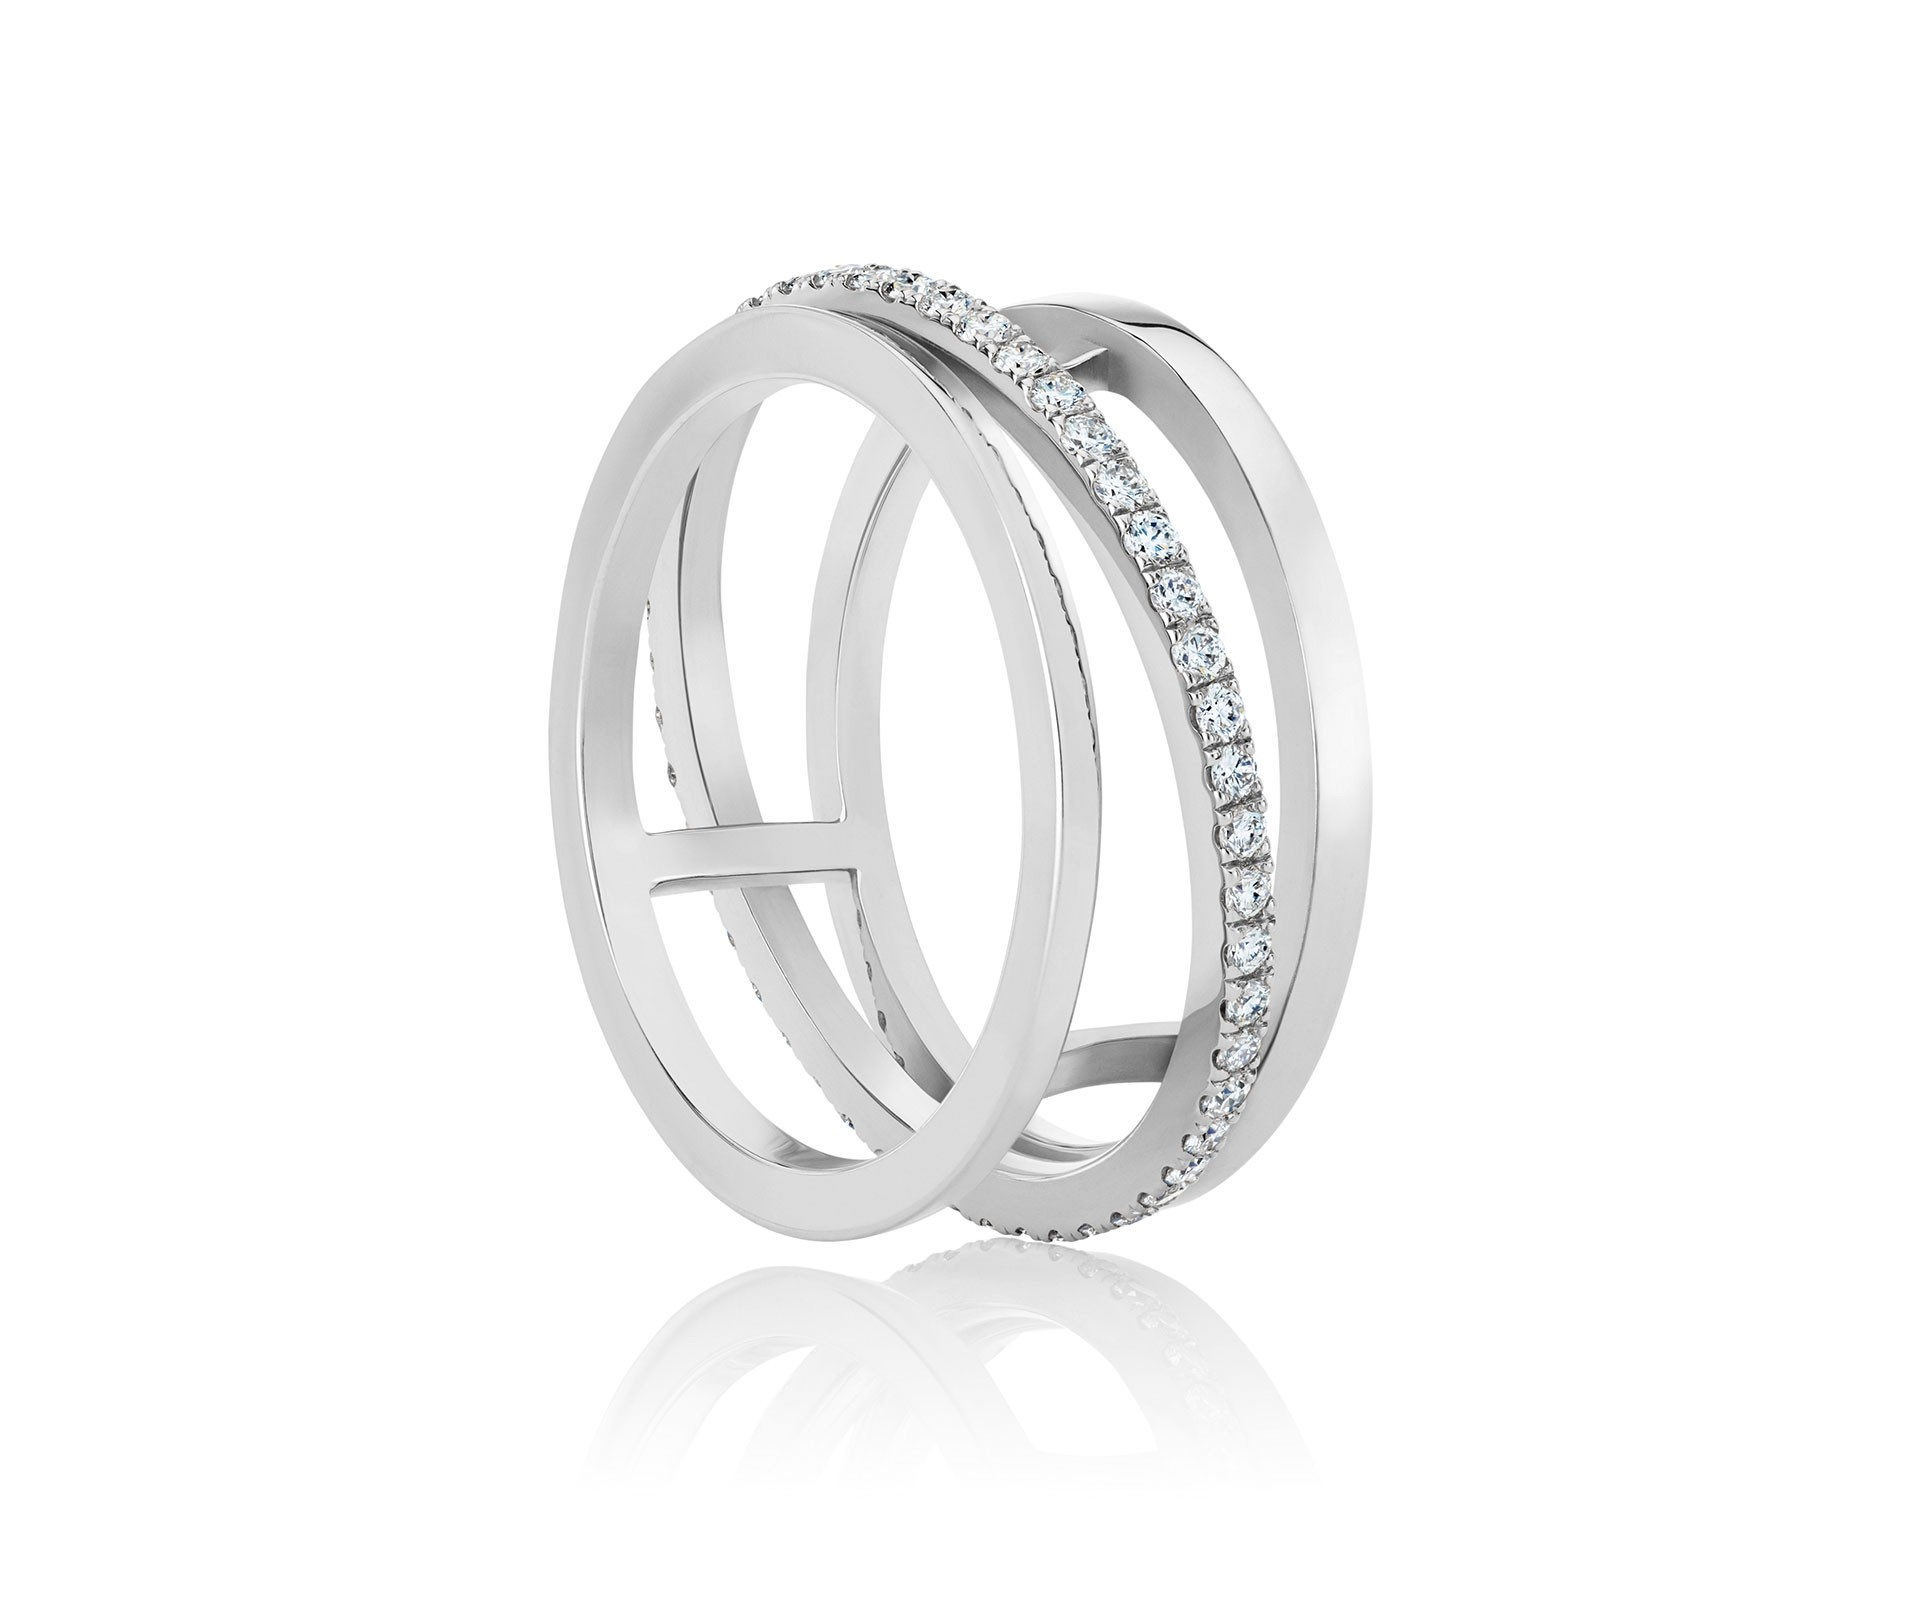 Diamond Rings And Bands For Women | De Beers Us Within Newest Diamond Five Stone Swirl Anniversary Bands In White Gold (Gallery 25 of 25)